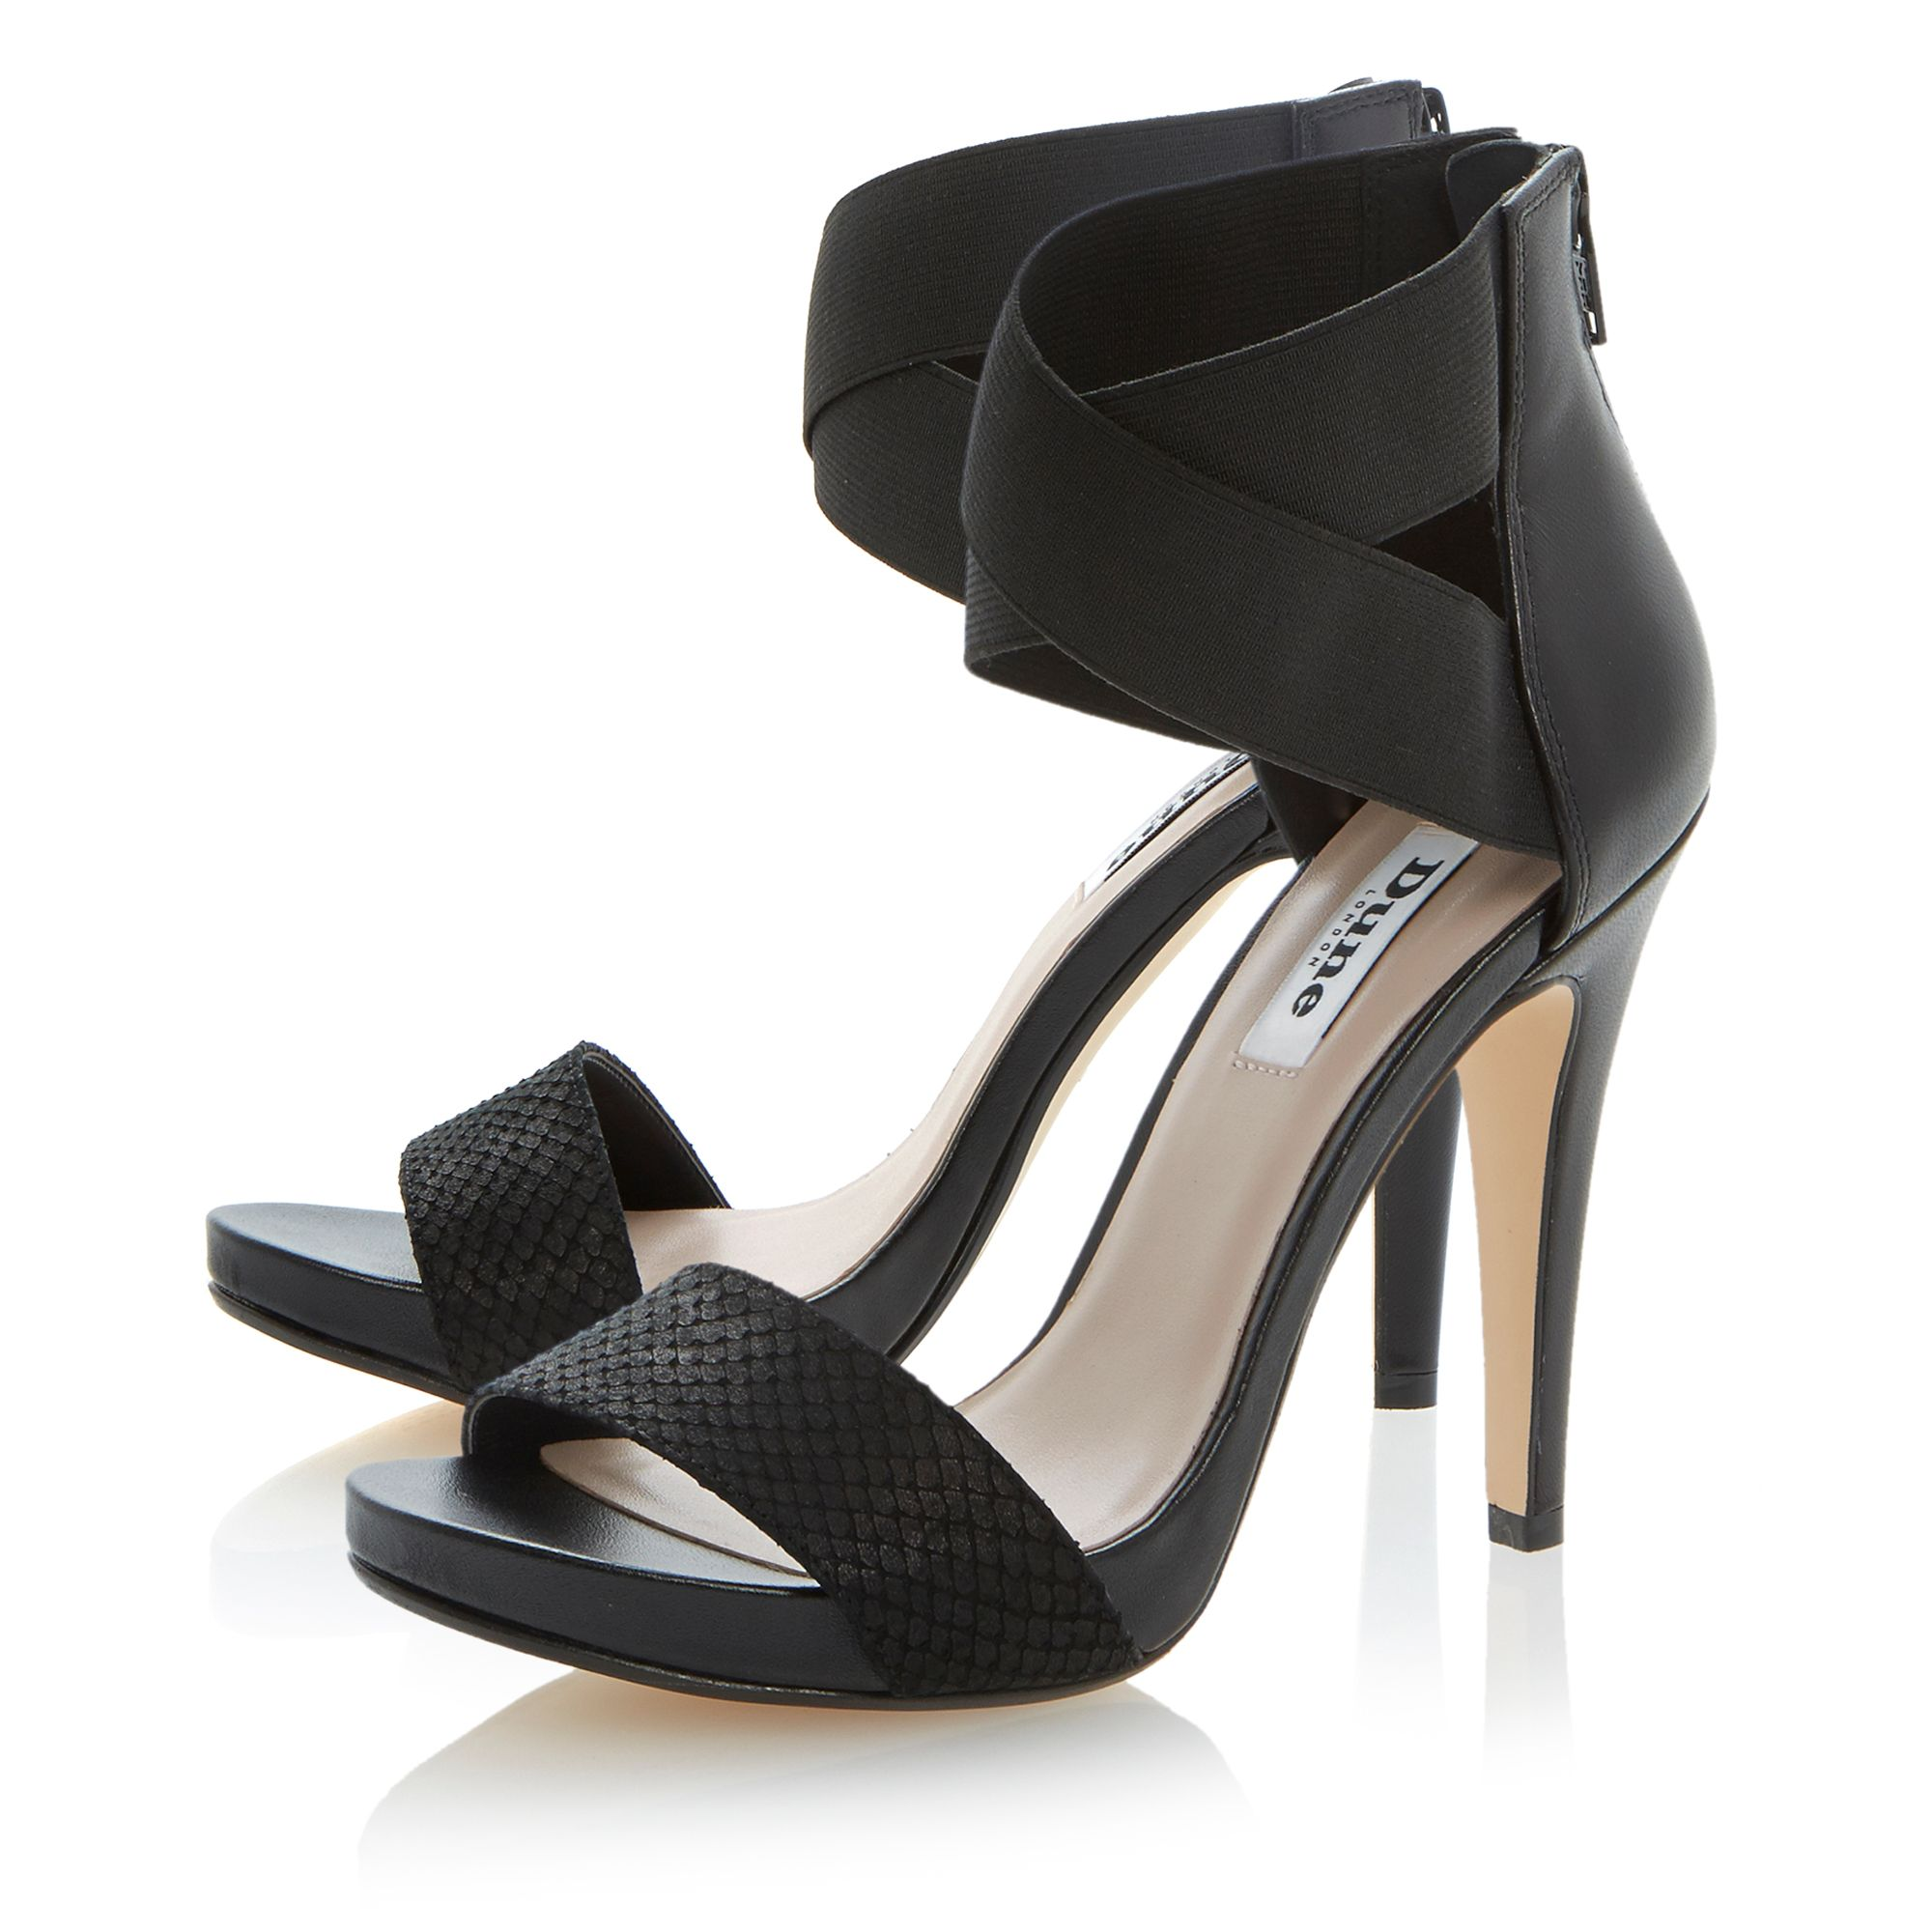 Harmony stiletto dressy sandals